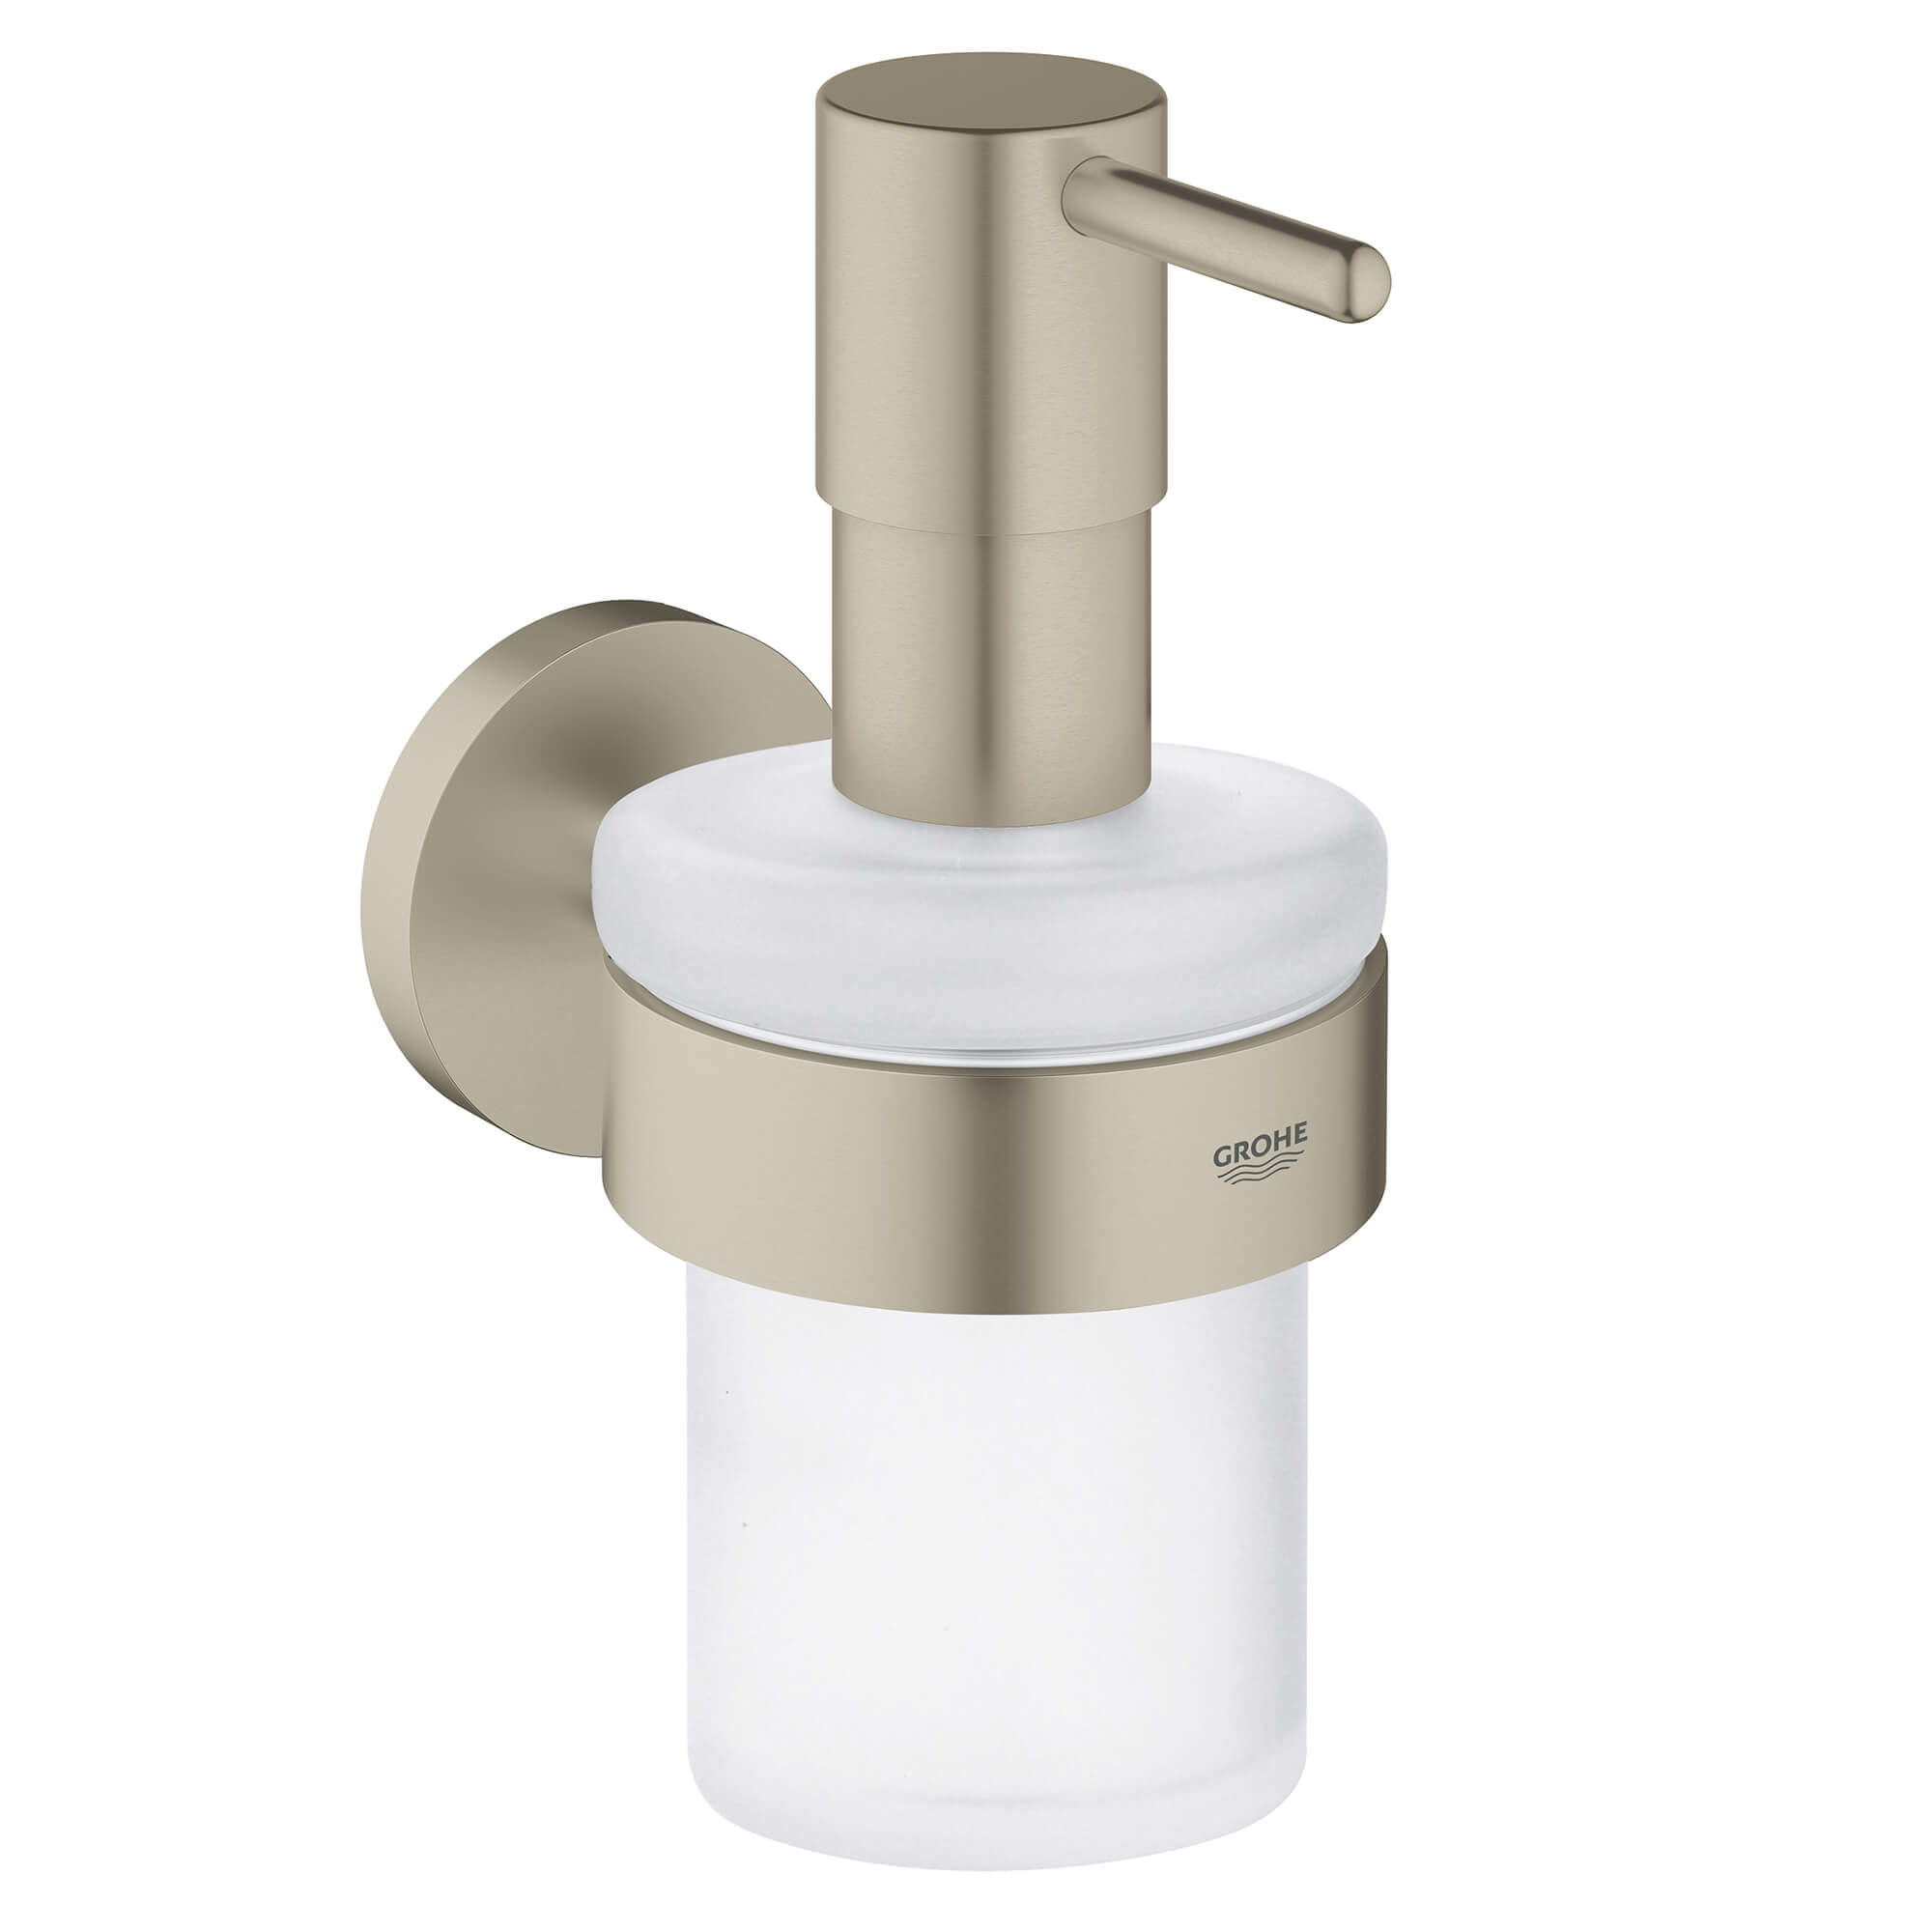 Soap Dispenser with Holder GROHE BRUSHED NICKEL